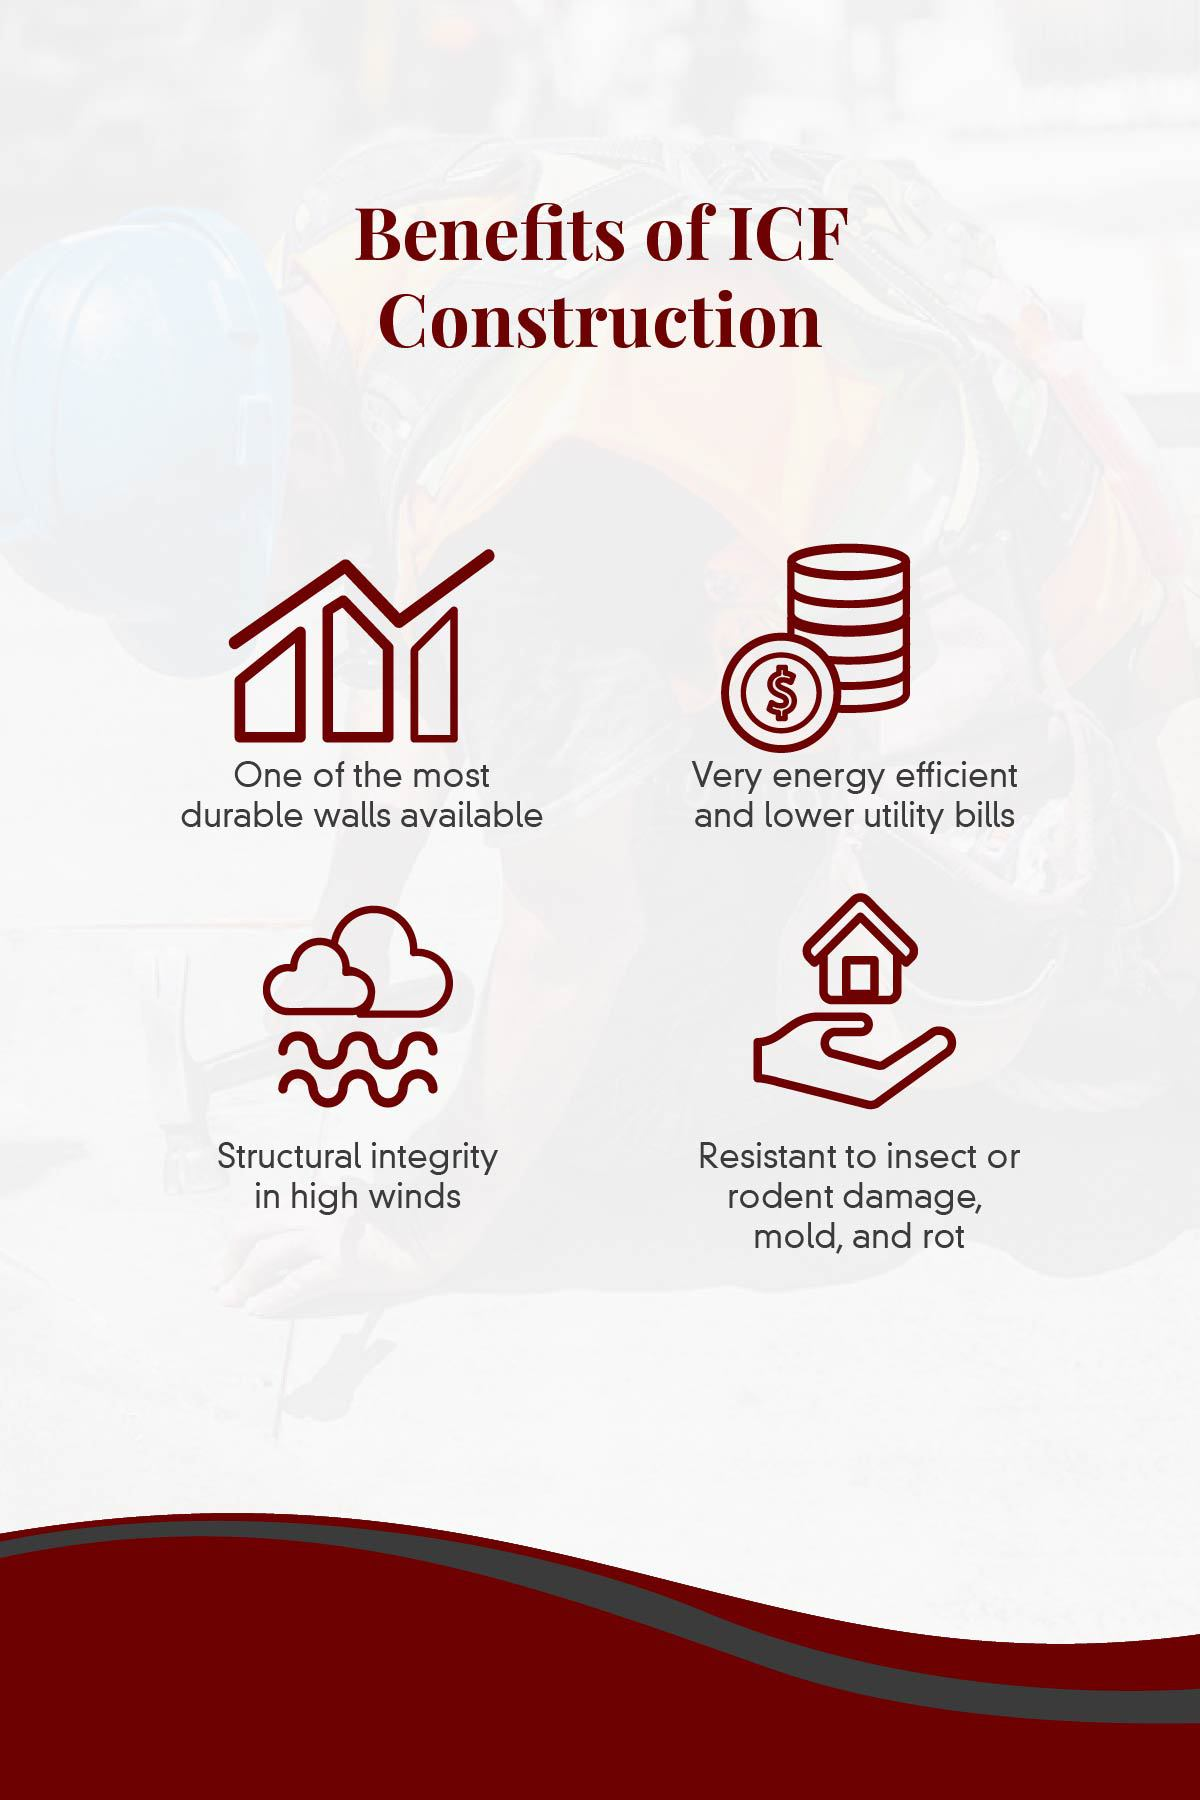 Benefits of ICF Construction